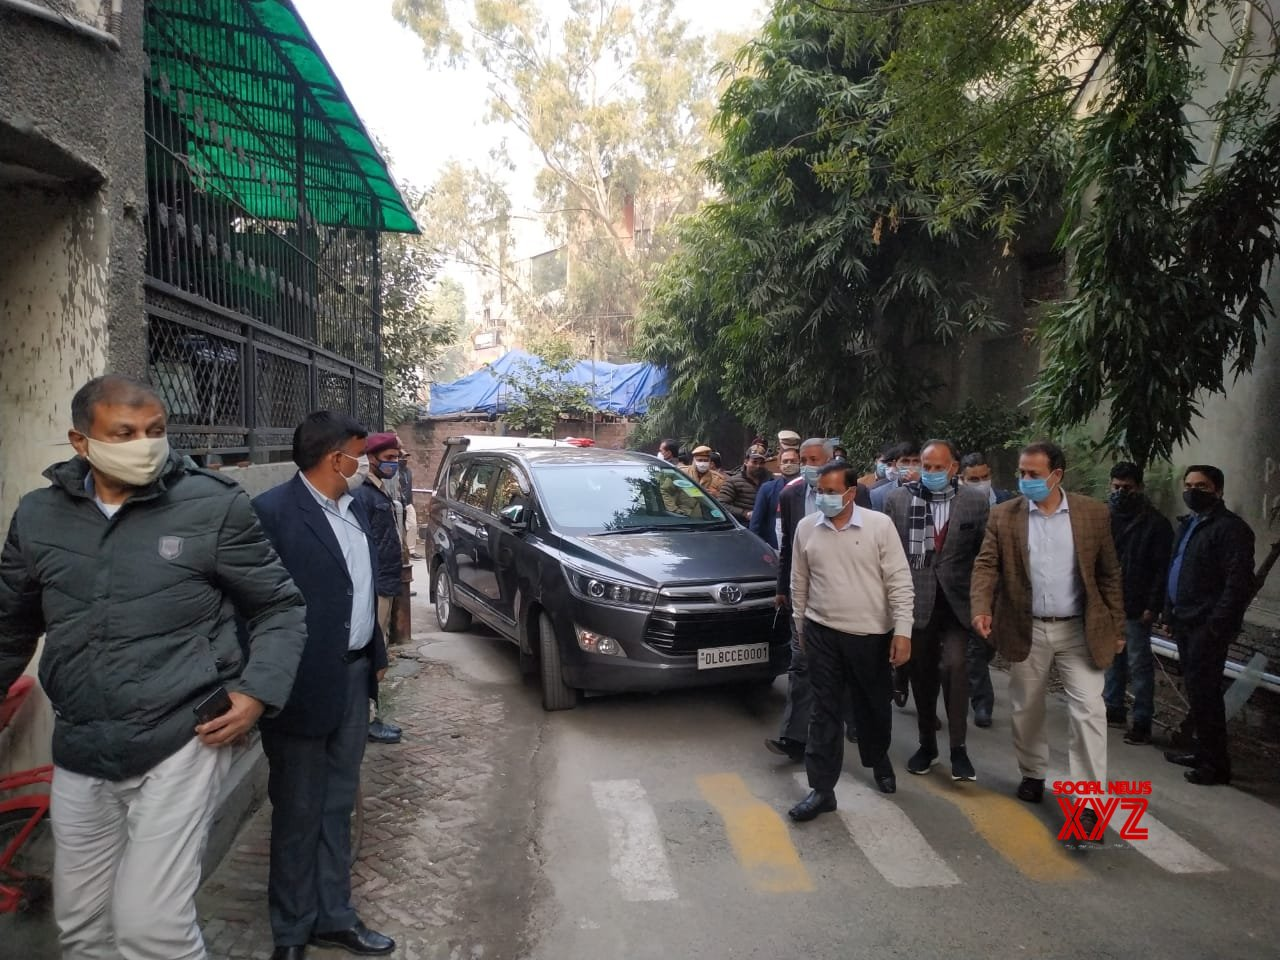 New Delhi: Chief Minister of Delhi,Arvind Kejriwal visited the family of Late Dr. Hitesh Gupta, who lost his life in the line of Covid duty #Gallery